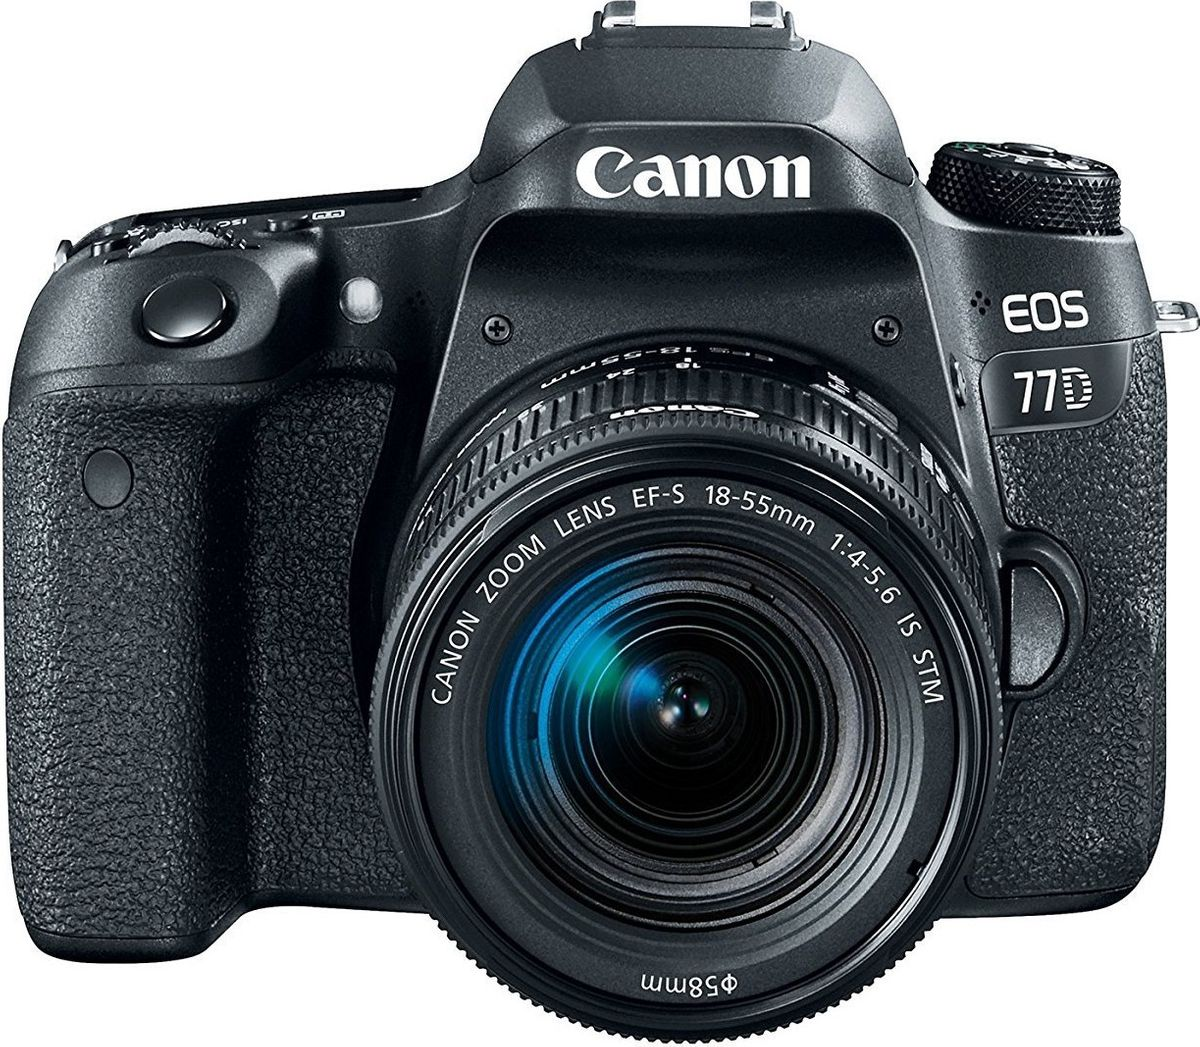 Canon EOS 77D DSLR Camera ( EF-S18-55) Best Price in India 2019, Specs & Review | Smartprix